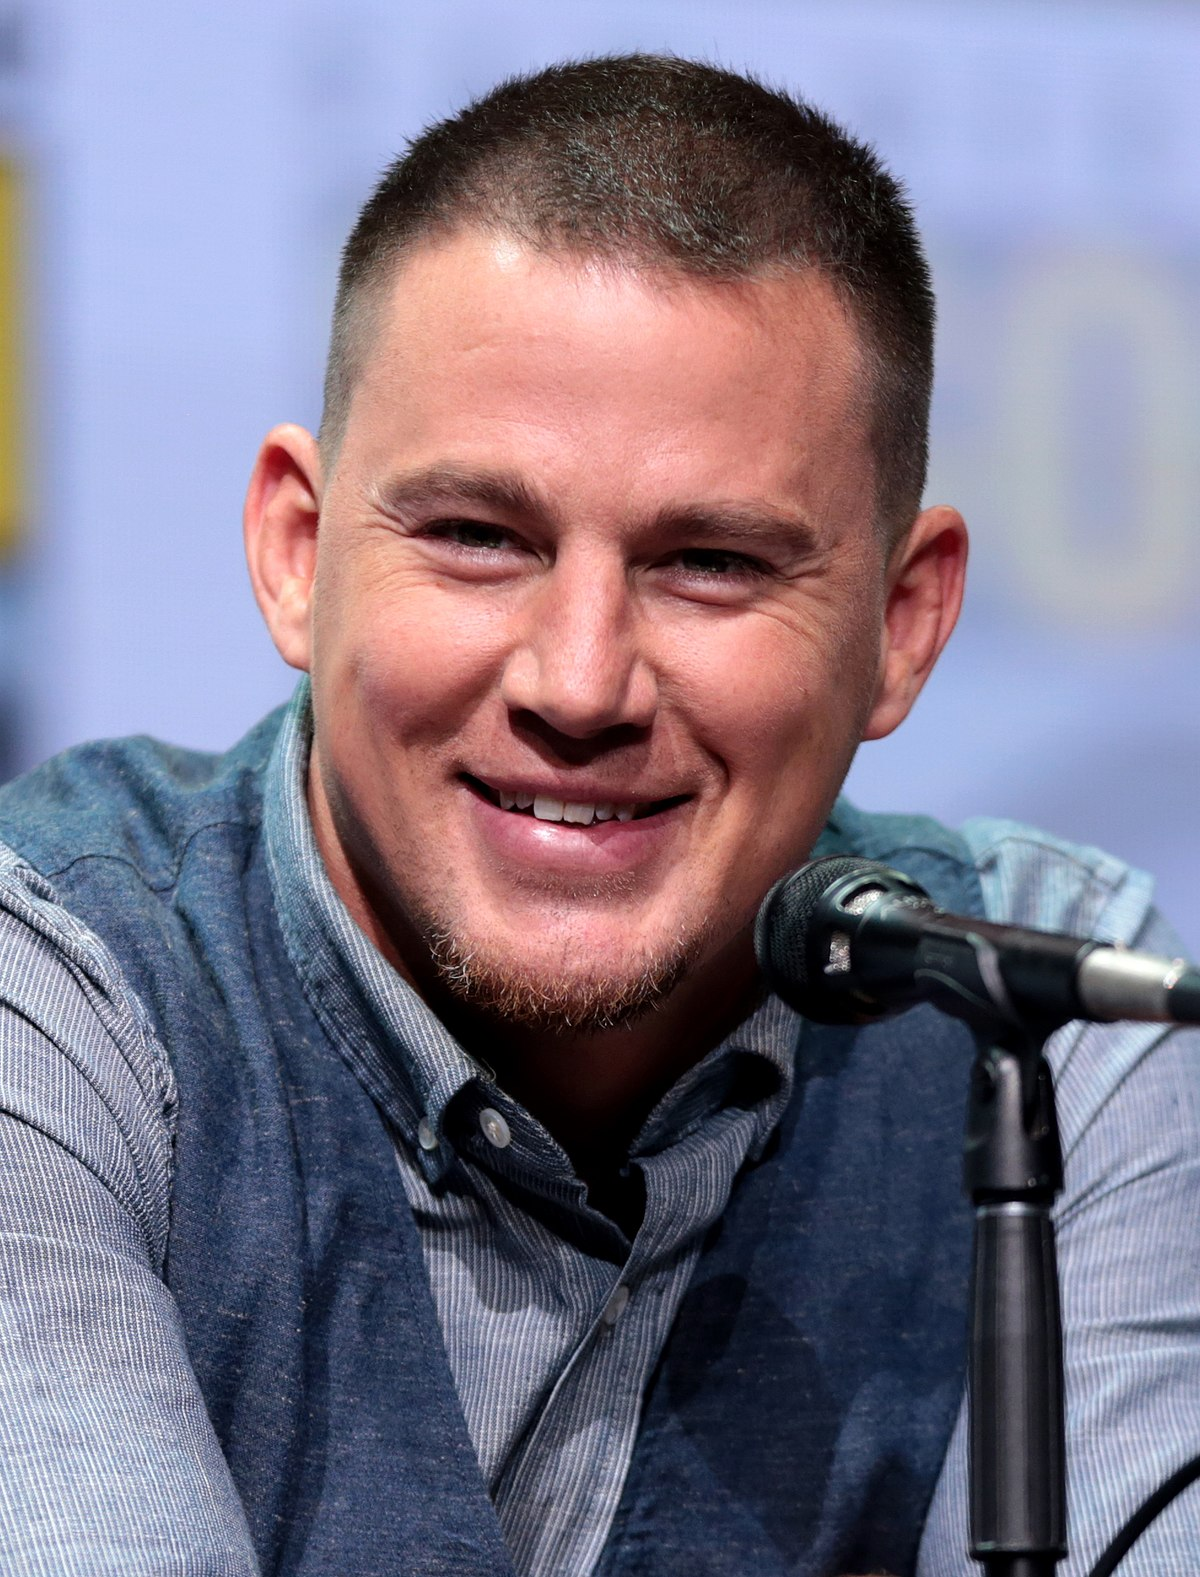 Channing Tatum – Wikipedia Channing Tatum